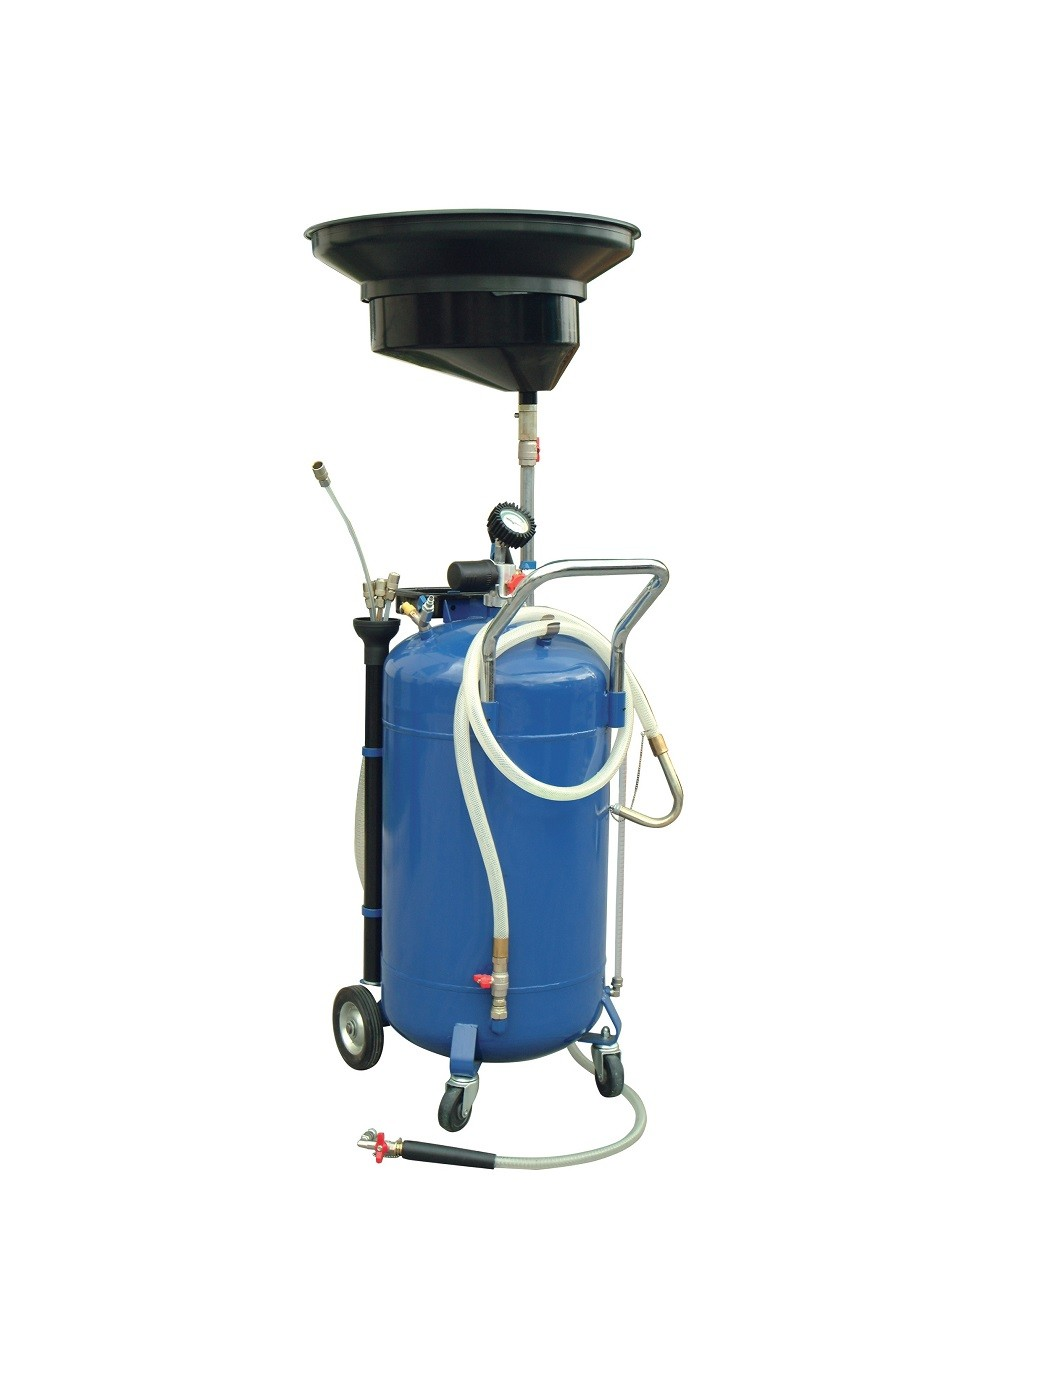 Suction And Drain Oil Drainer Rotech Diesel Fuel